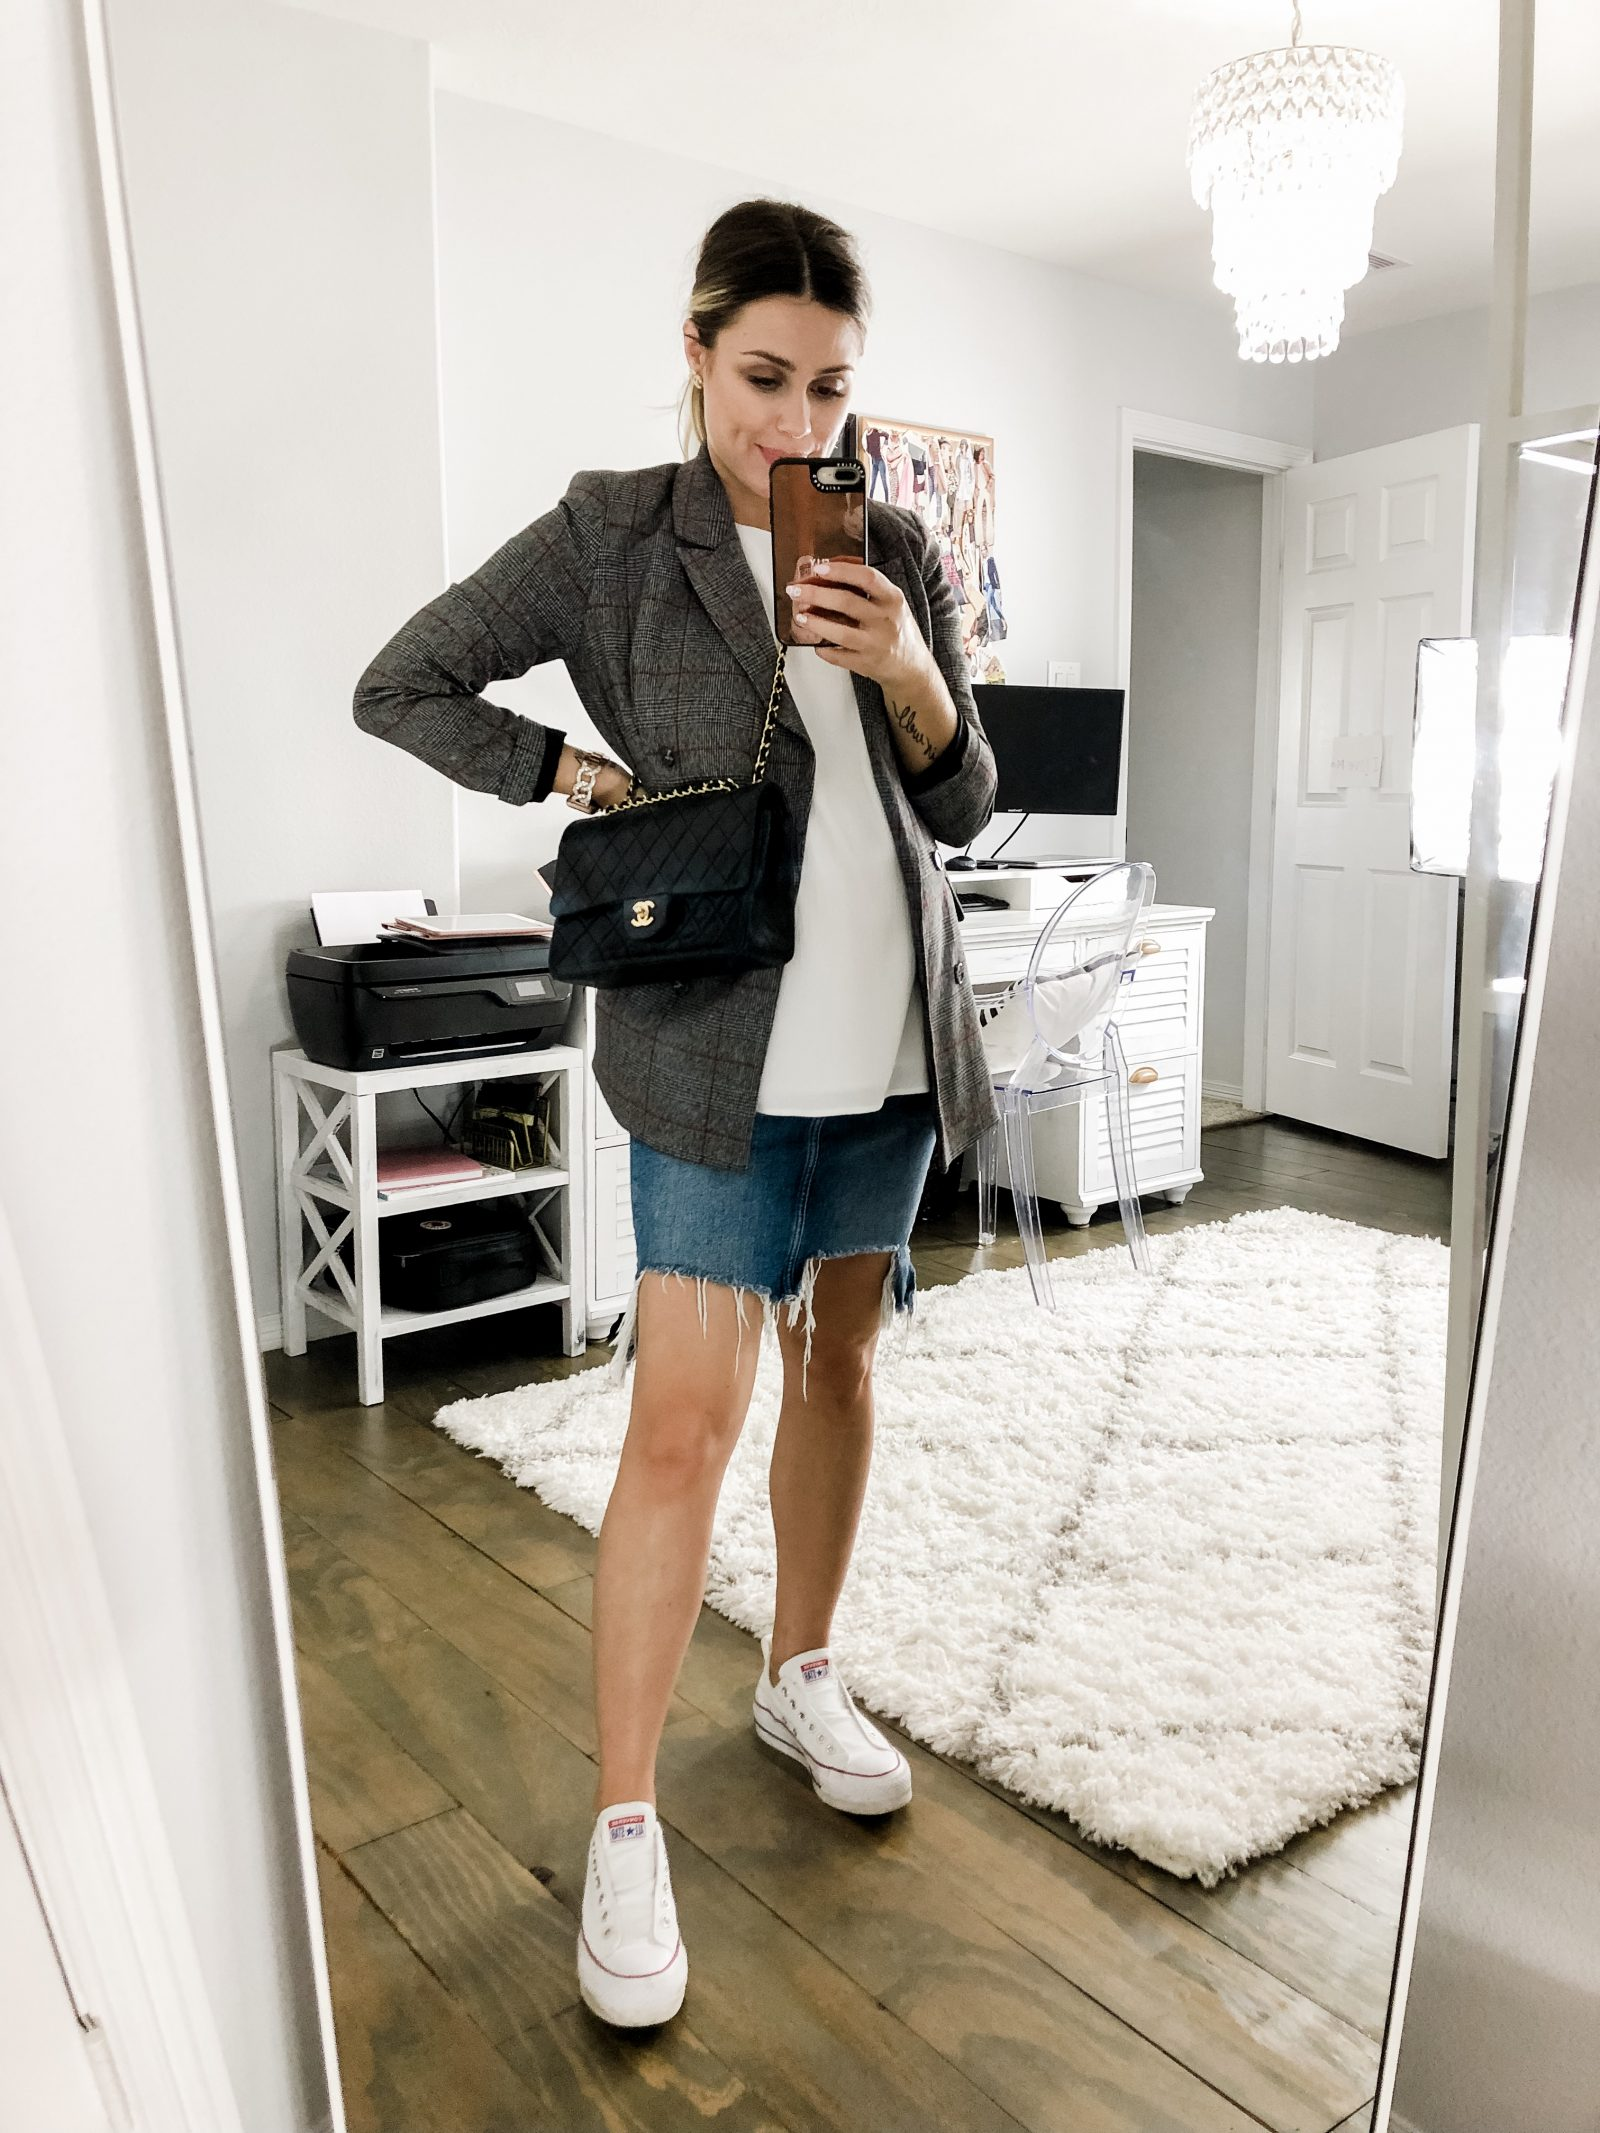 Houston fashion blogger Elly Brown wears her converse sneakers with a denim skirt and oversized blazer